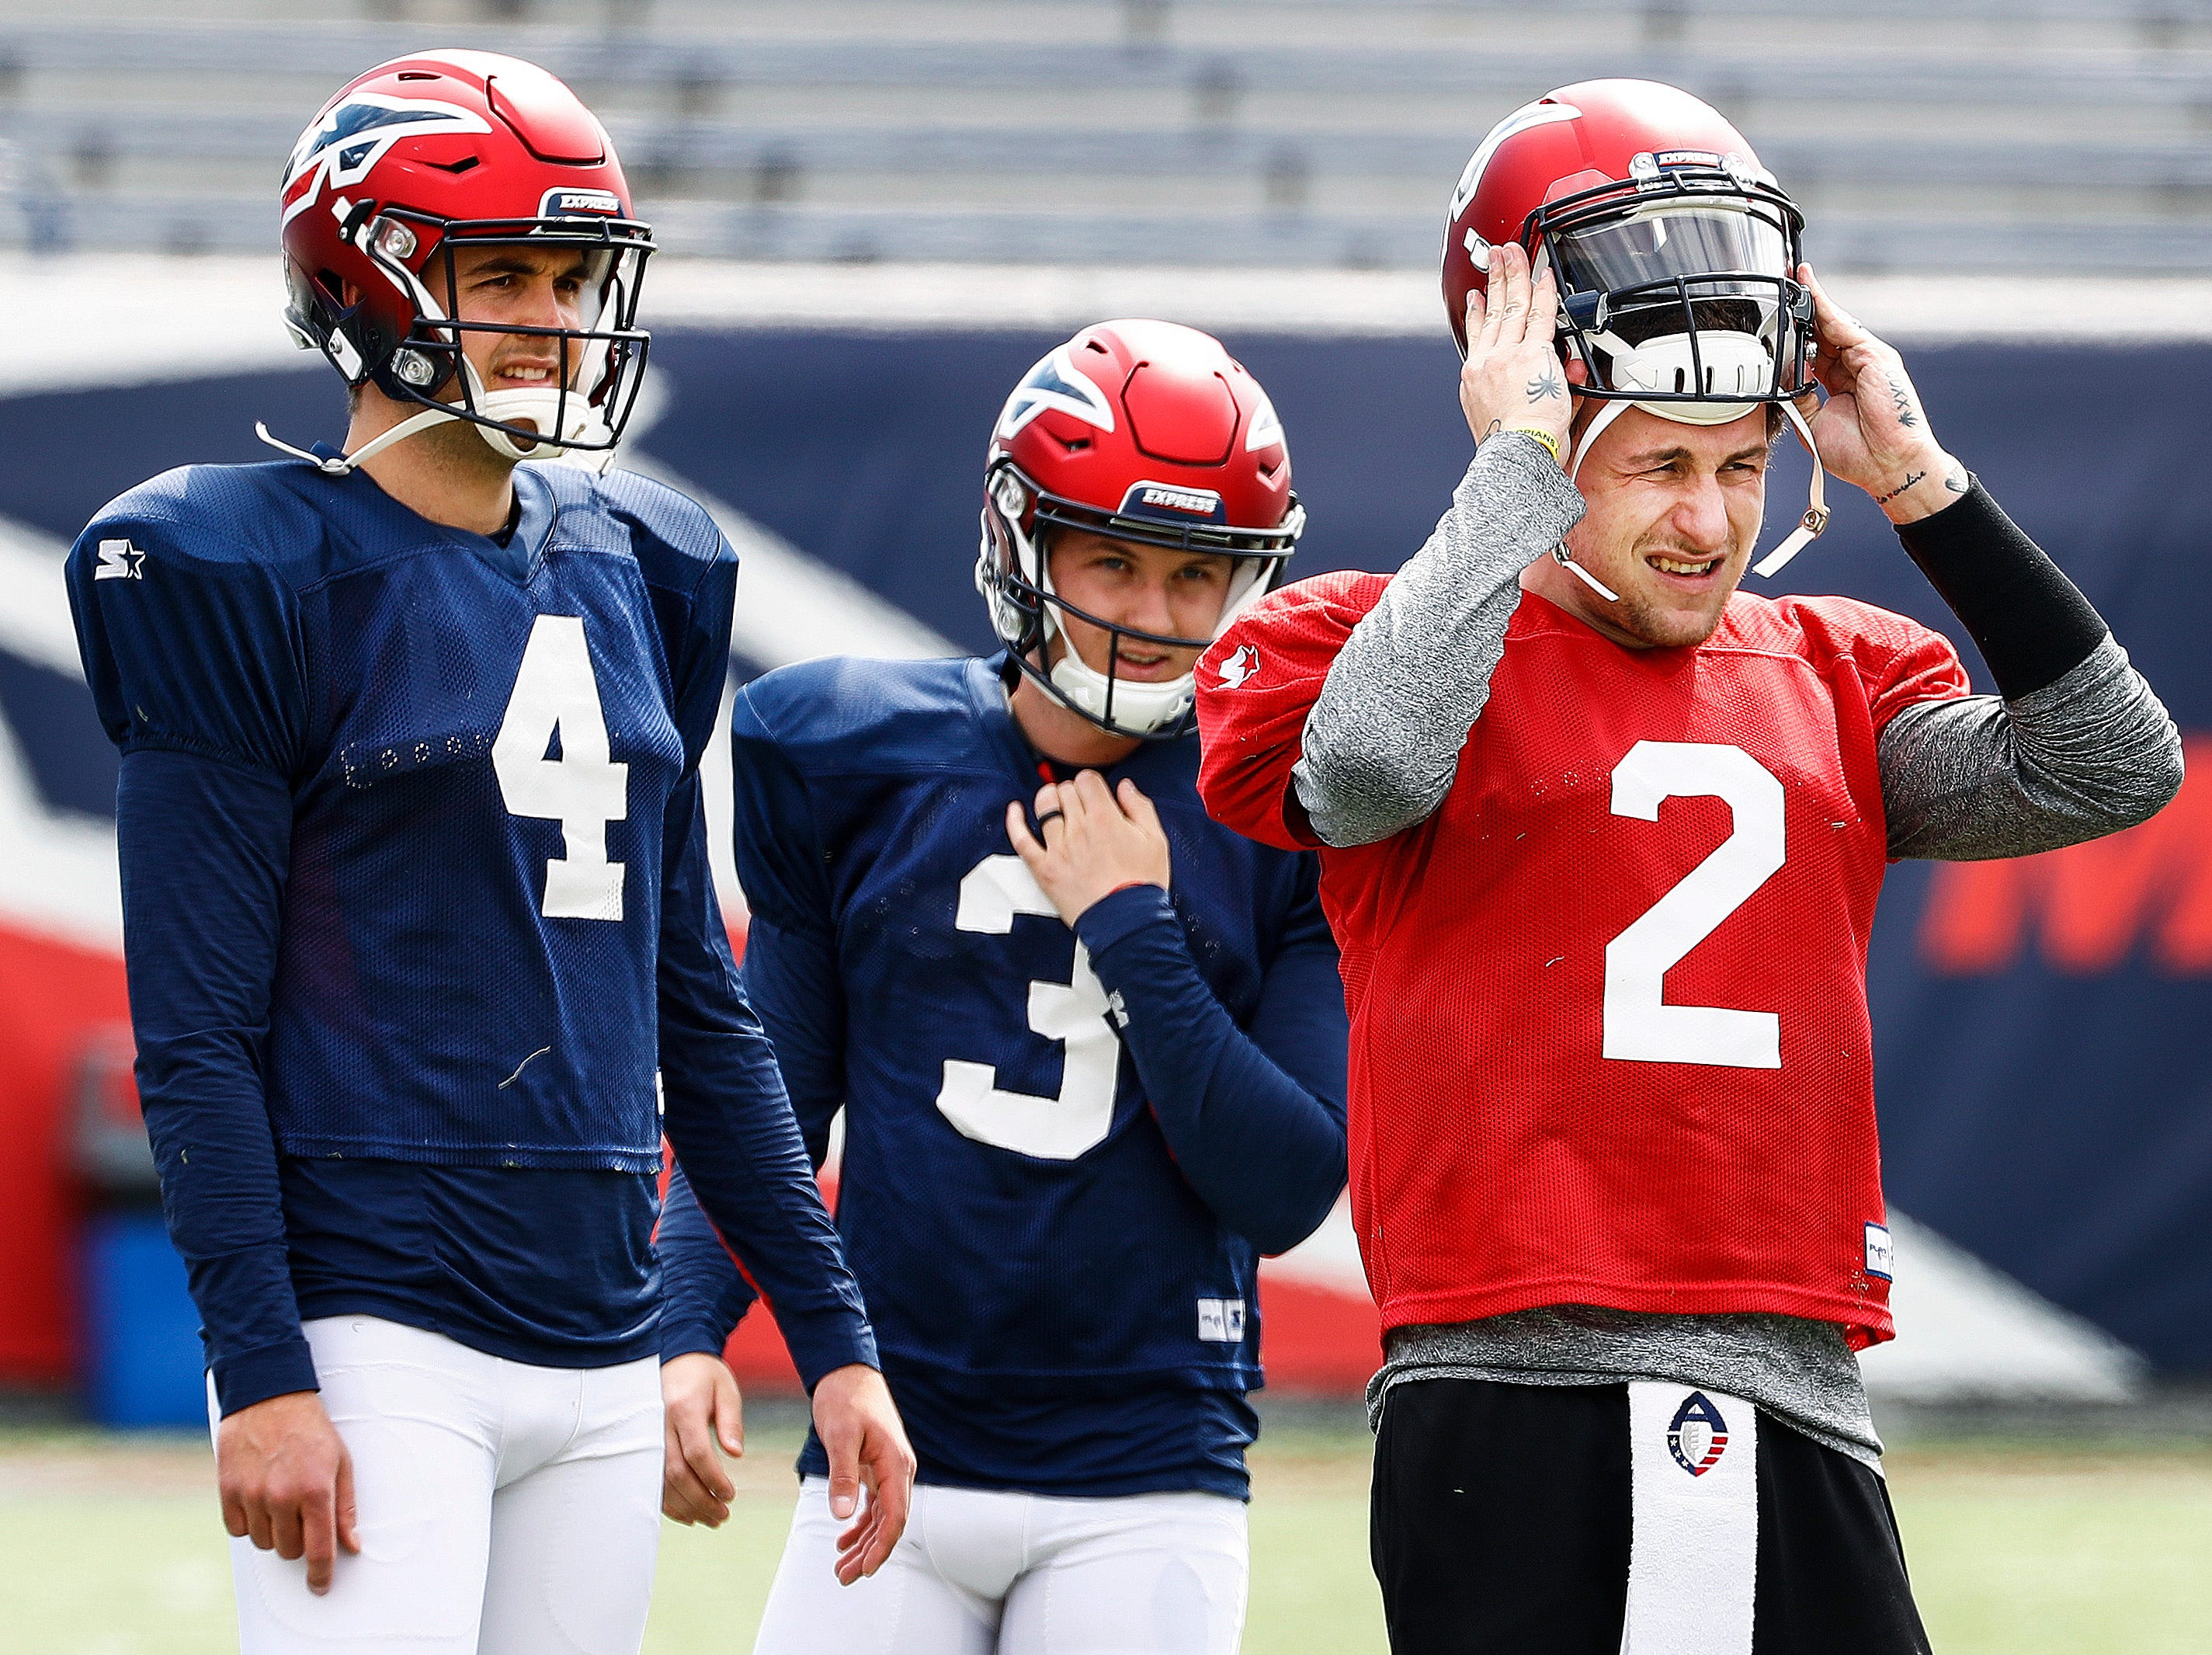 Former Heisman Trophy winner and recent pick up by the Memphis Express, quarterback Johnny Manziel practices with the team at the Liberty Bowl Memorial Stadium.